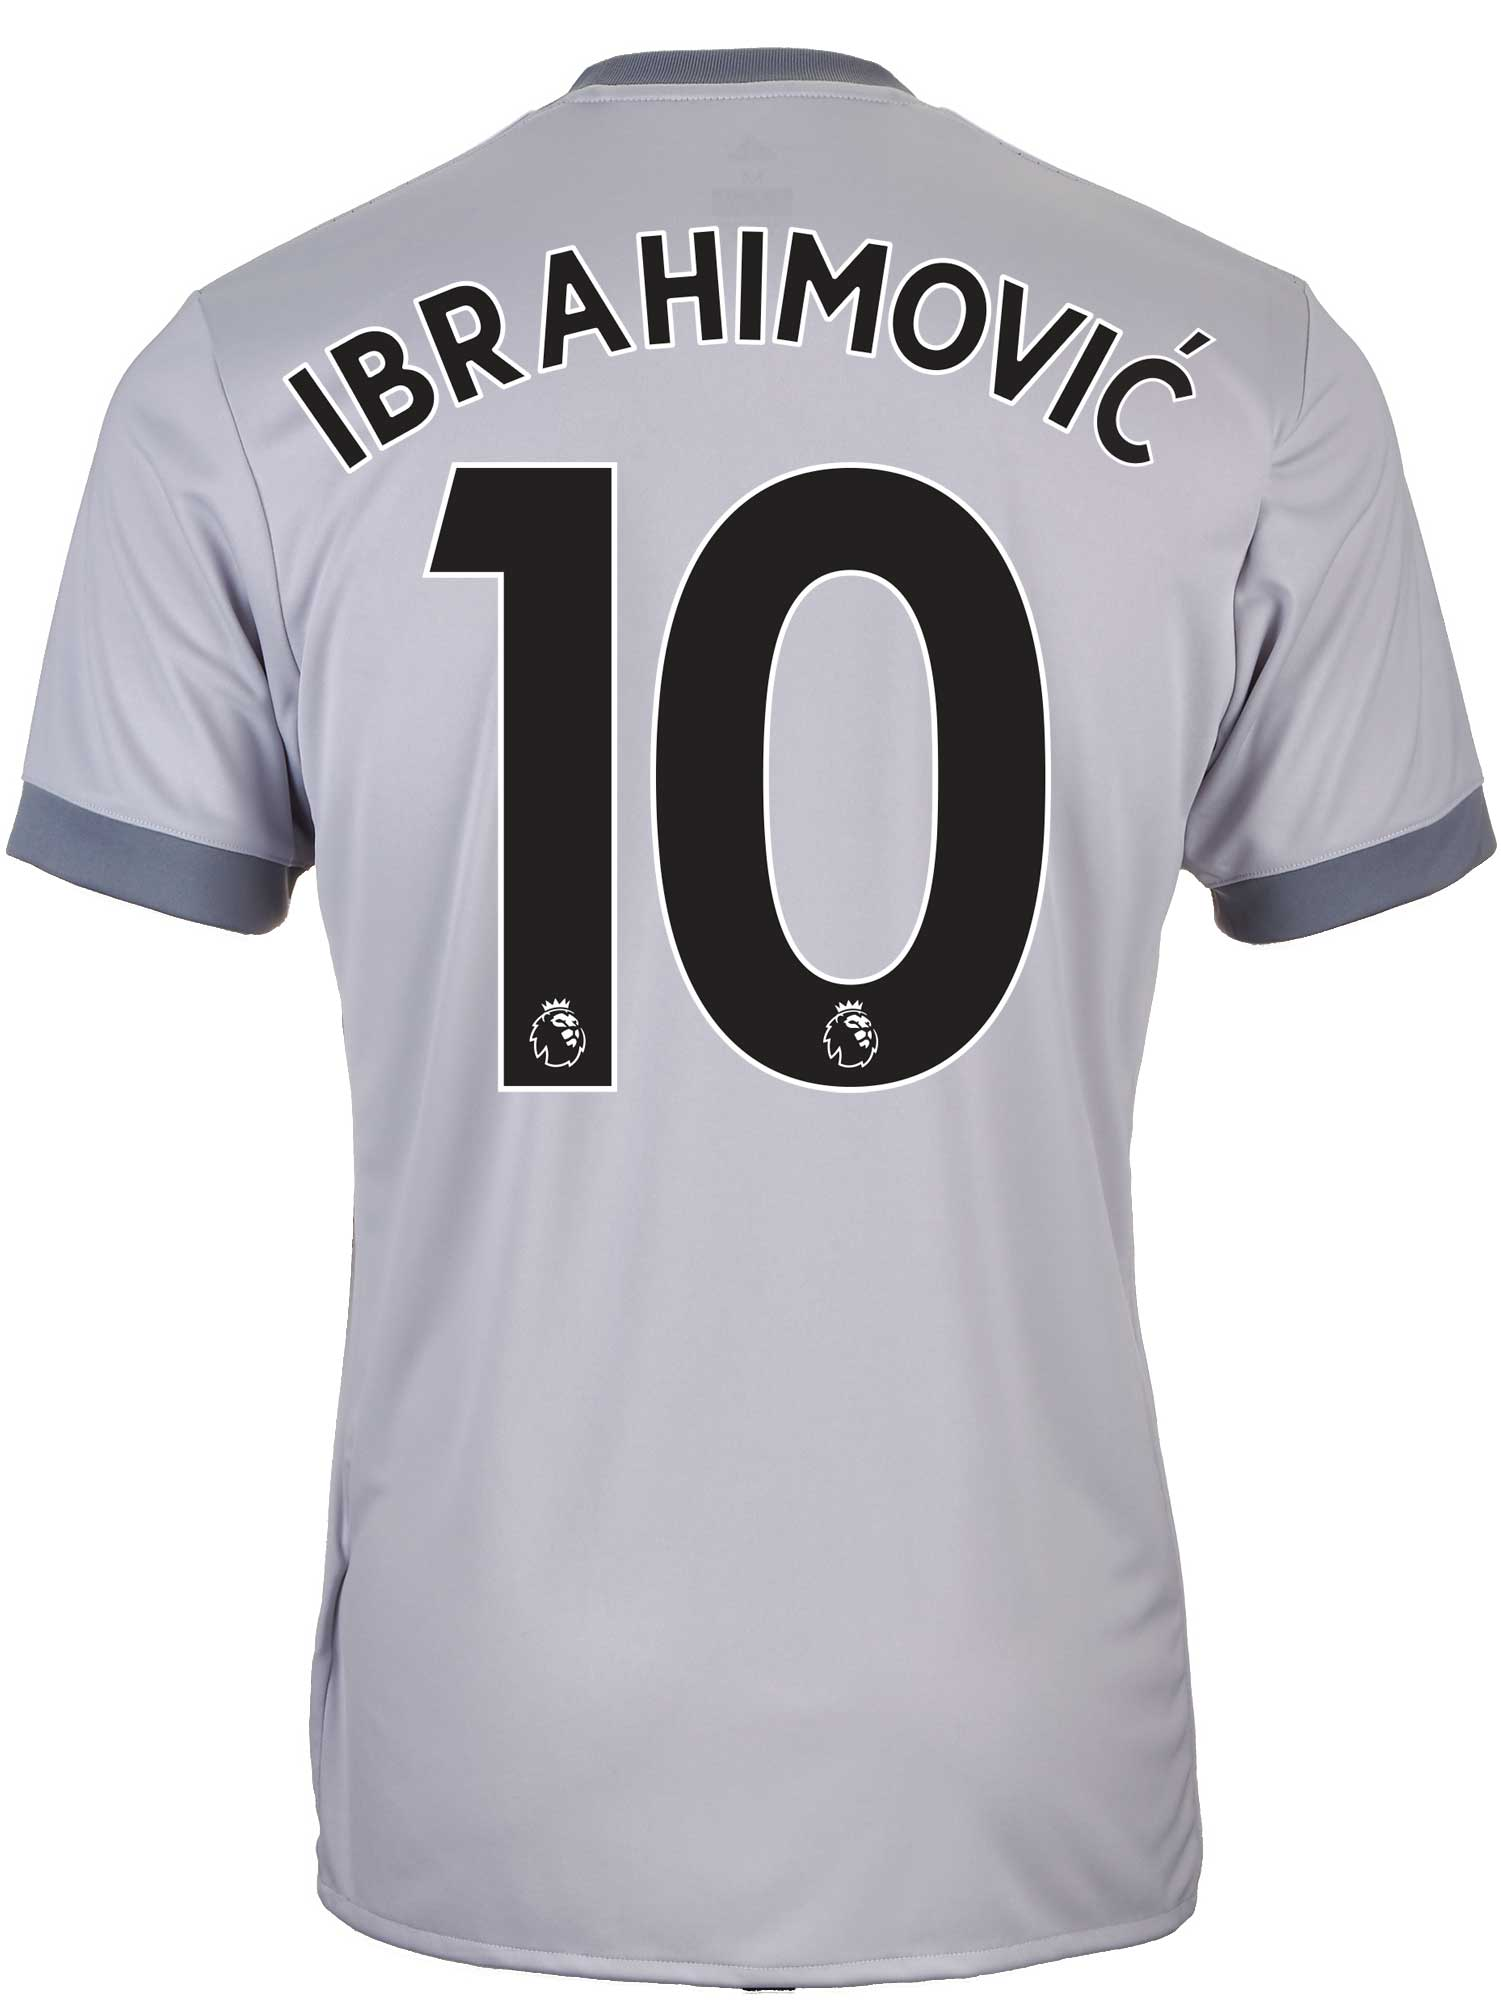 new product 14da2 ace31 2017/18 adidas Kids Zlatan Ibrahimovic Manchester United 3rd ...